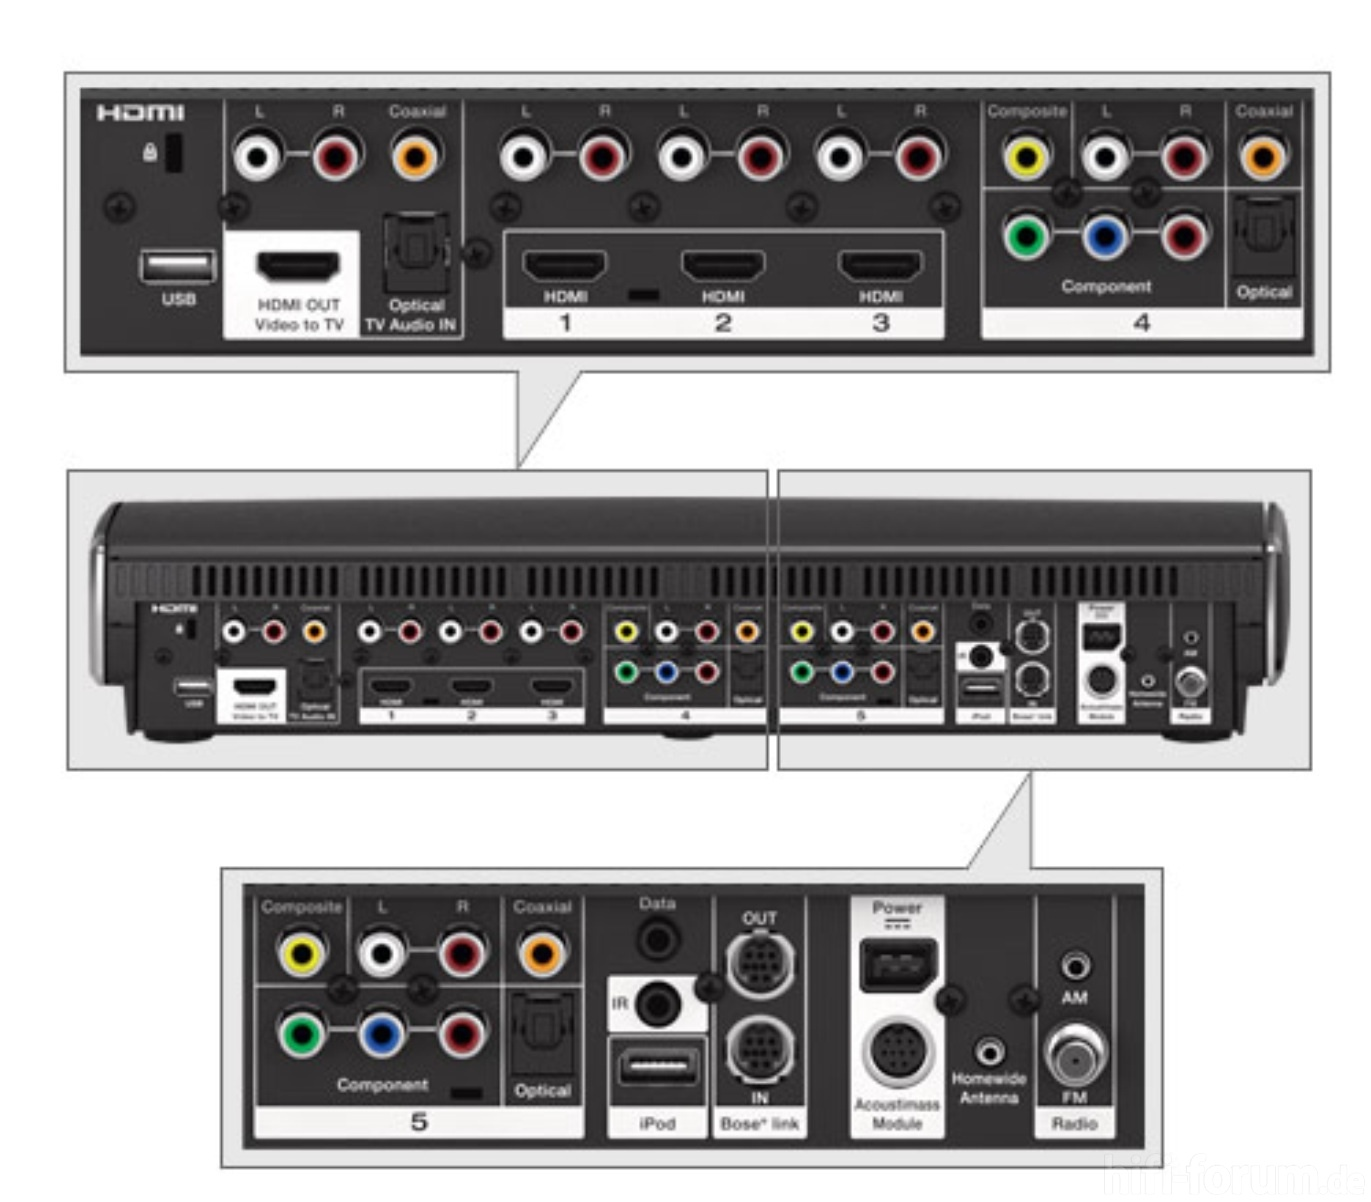 how to set up 5.1 surround sound system on pc